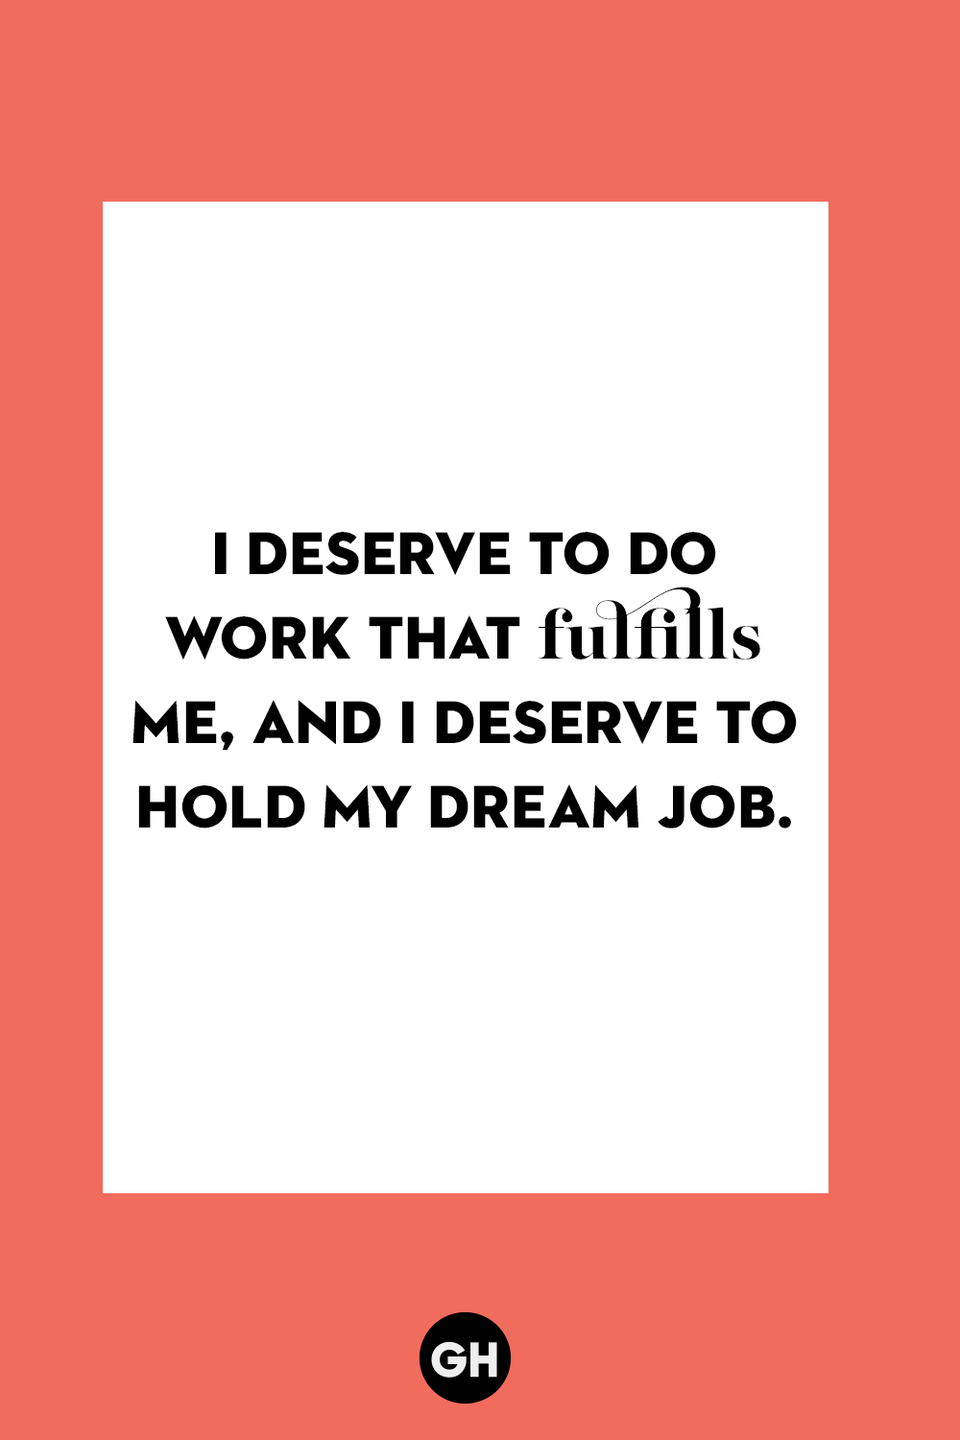 <p>I deserve to do work that fulfills me, and I deserve to hold my dream job.</p>